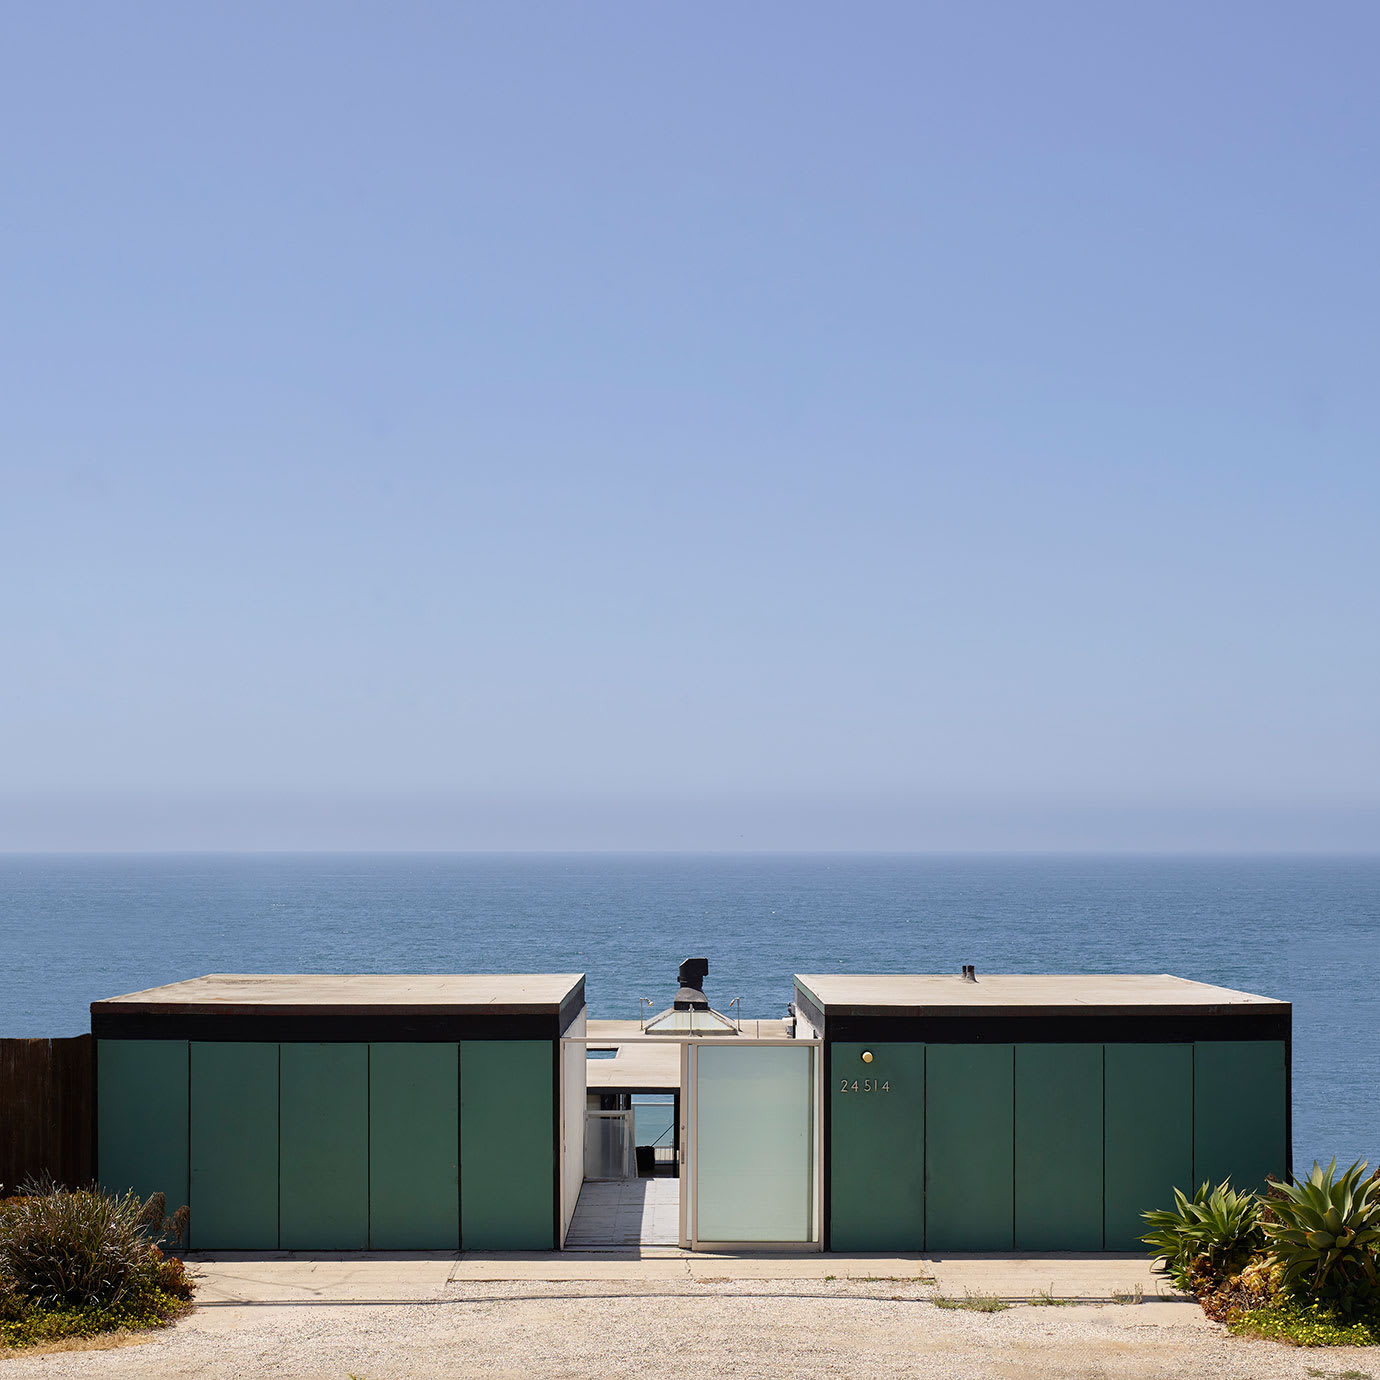 The exterior of a modernist house overlooking the sea.